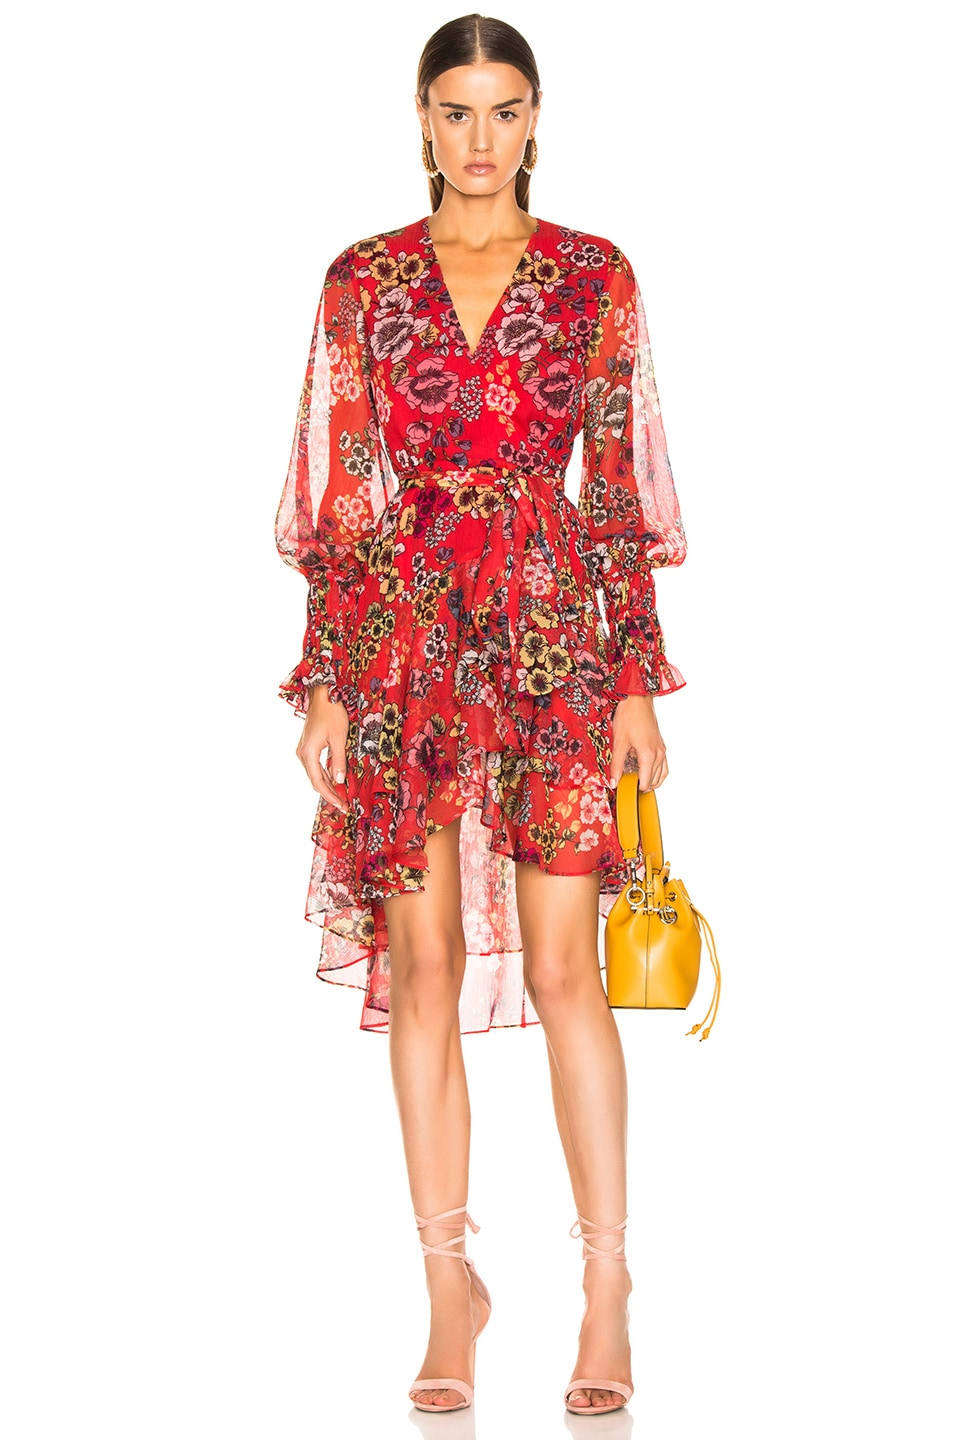 73d527818d8e8f Image 1 of Alexis Sidony Dress in Eden Floral Red